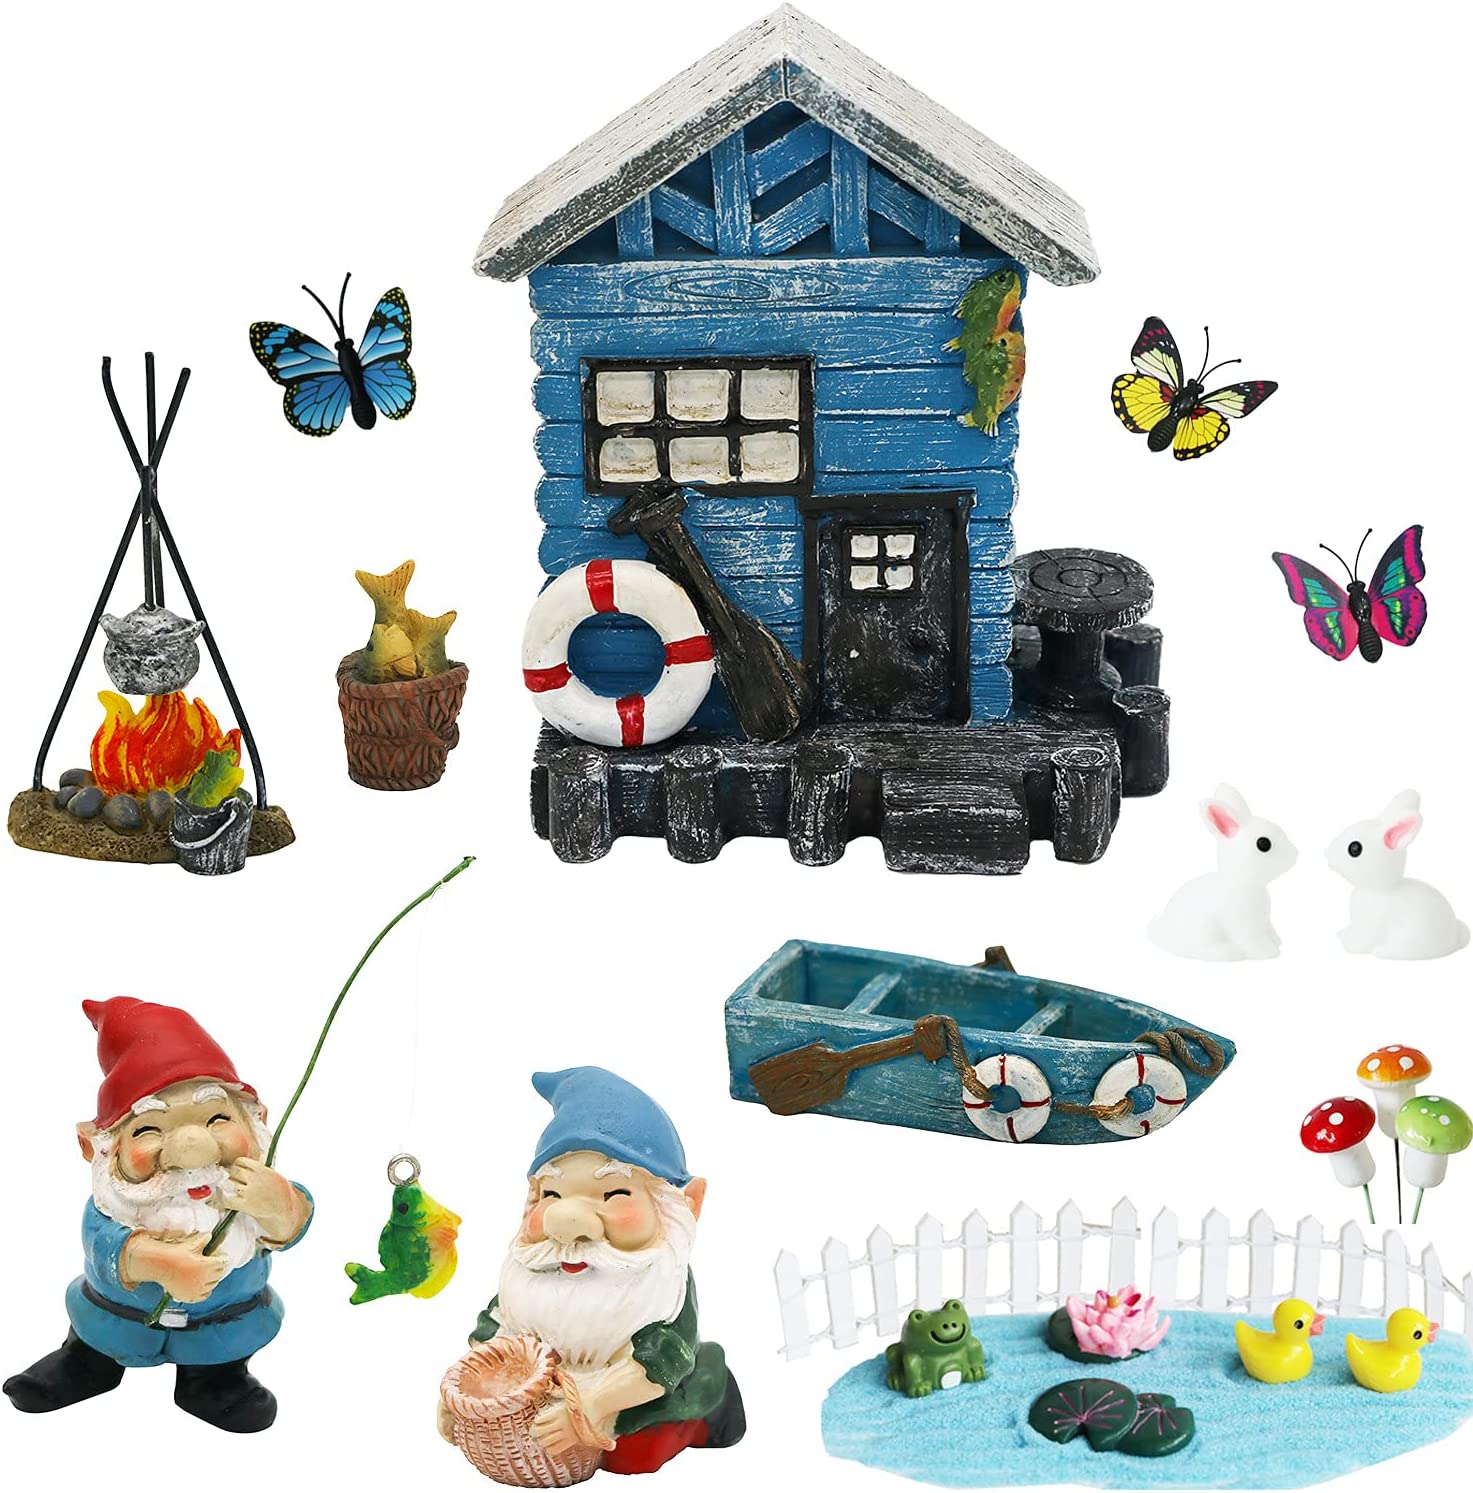 Miniature Gnome Fairy Garden Decoration – Fairy Garden Accessories Kit Decor Outdoor Small Gnome Figurines Statue Supplier Fairy House Yard Lawn Ornaments Birthday Gifts Girls Boys Adults